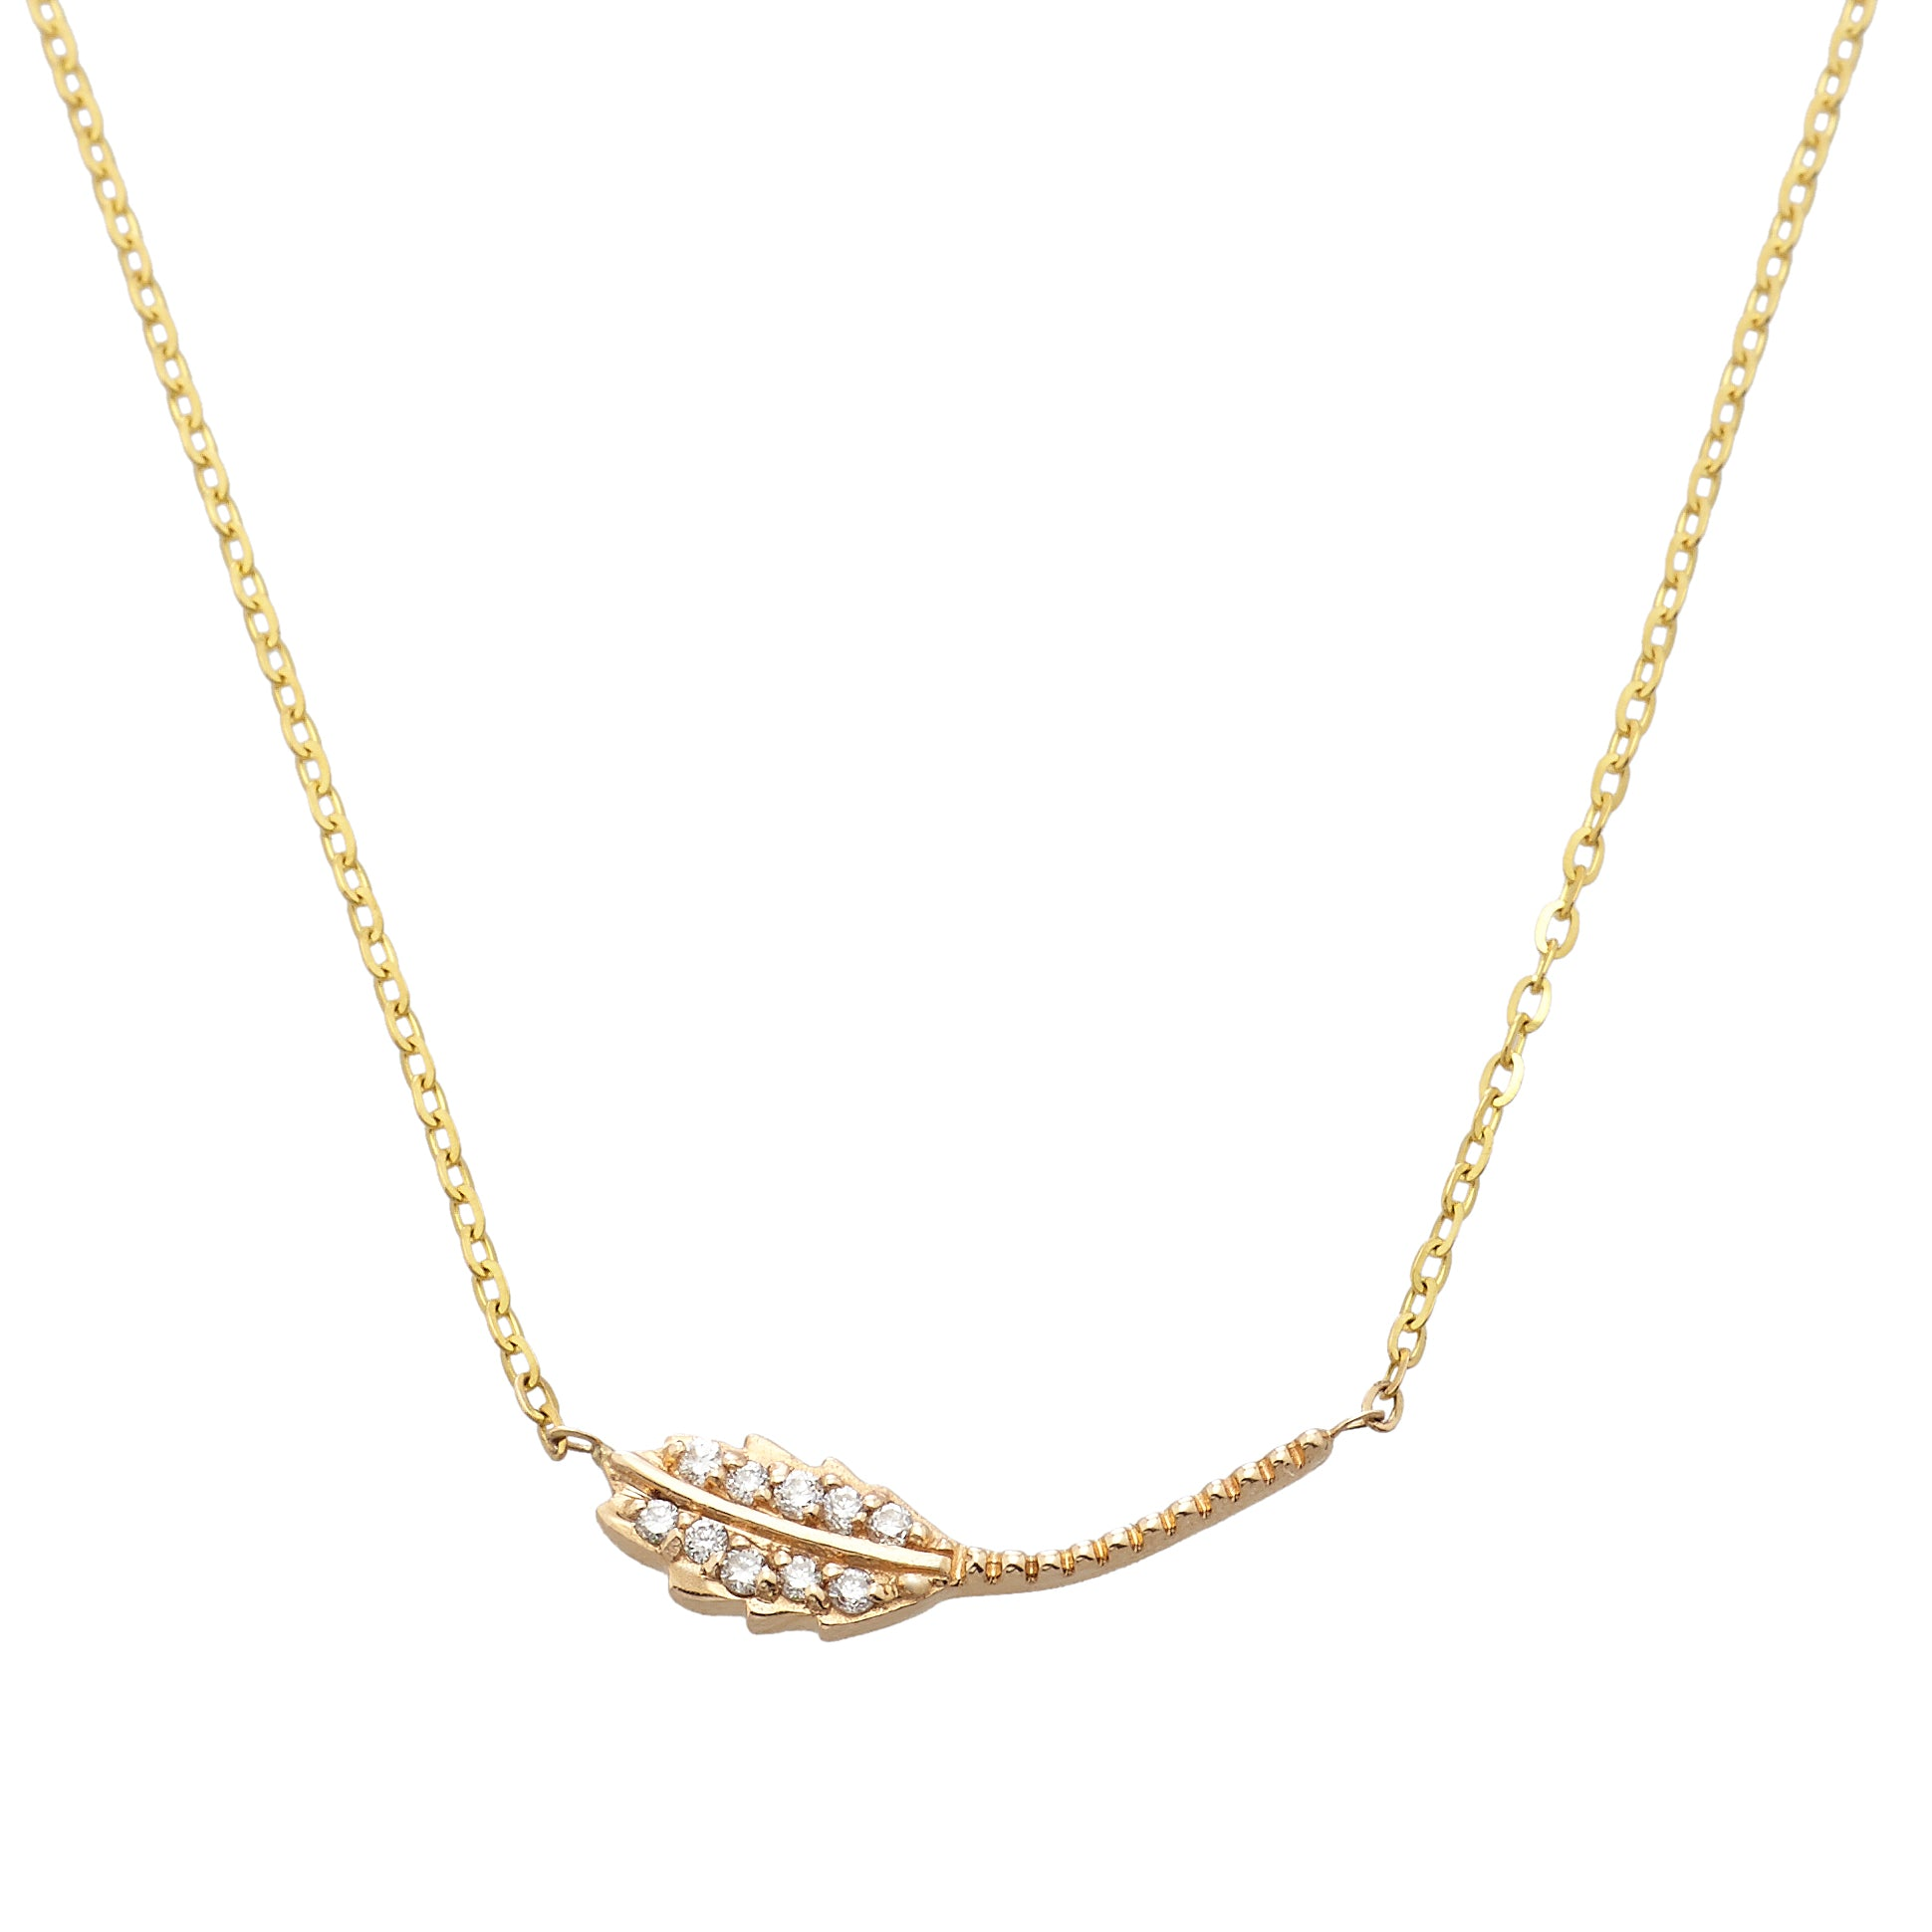 Vale 14k Pave Leaf Necklace